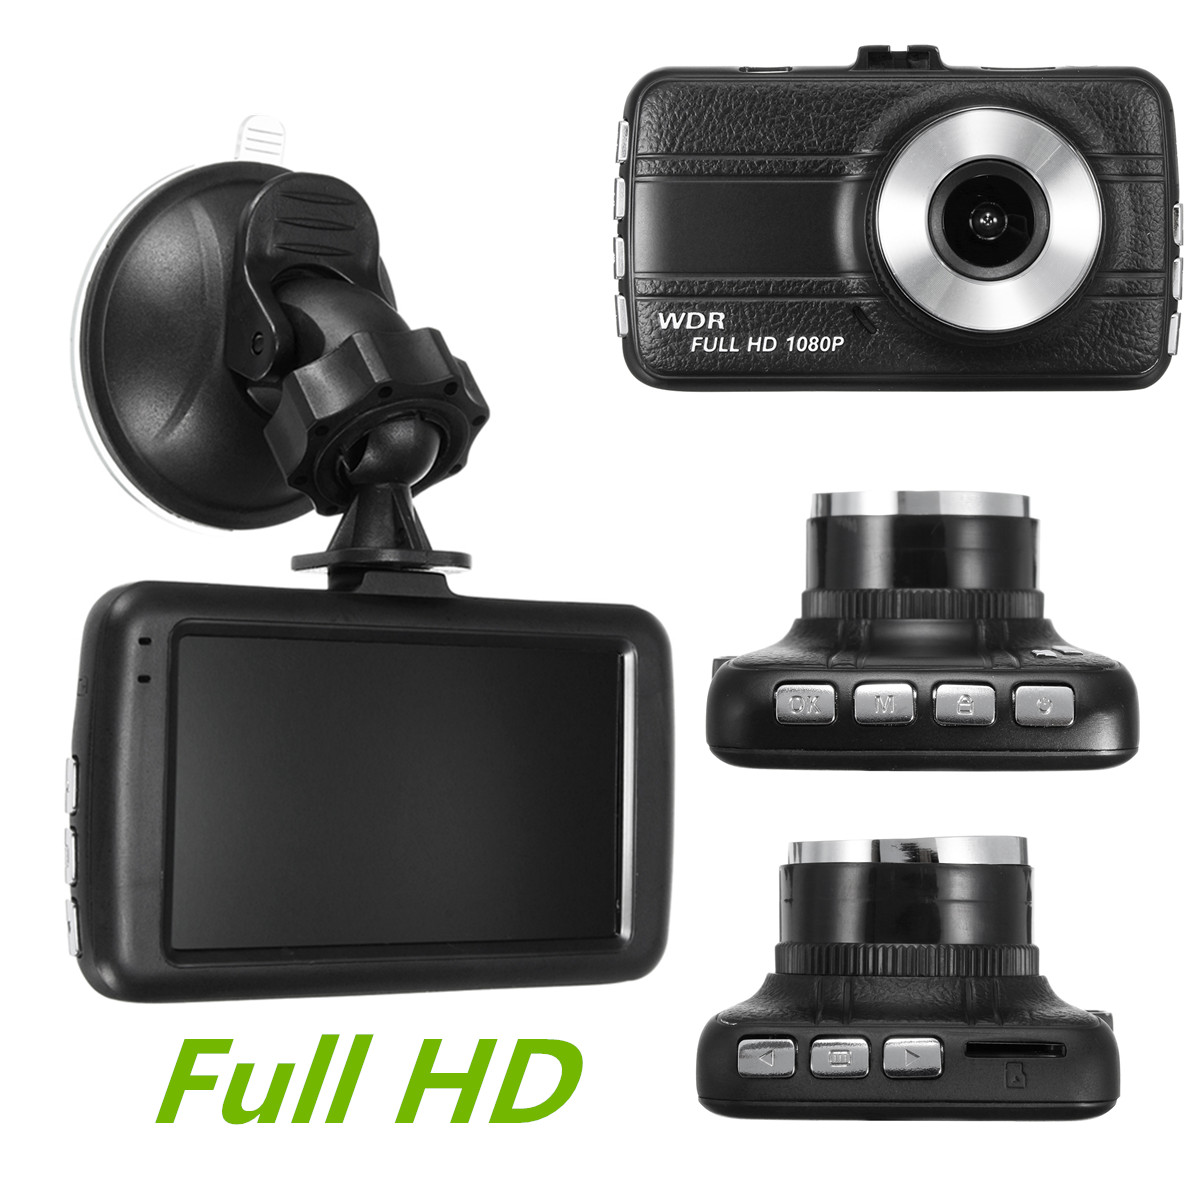 Dash Cam 3''1080P Car Video Recorder DVR Camera with G-Sensor,Motion Detection, Seamless Loop Recording,Microphone